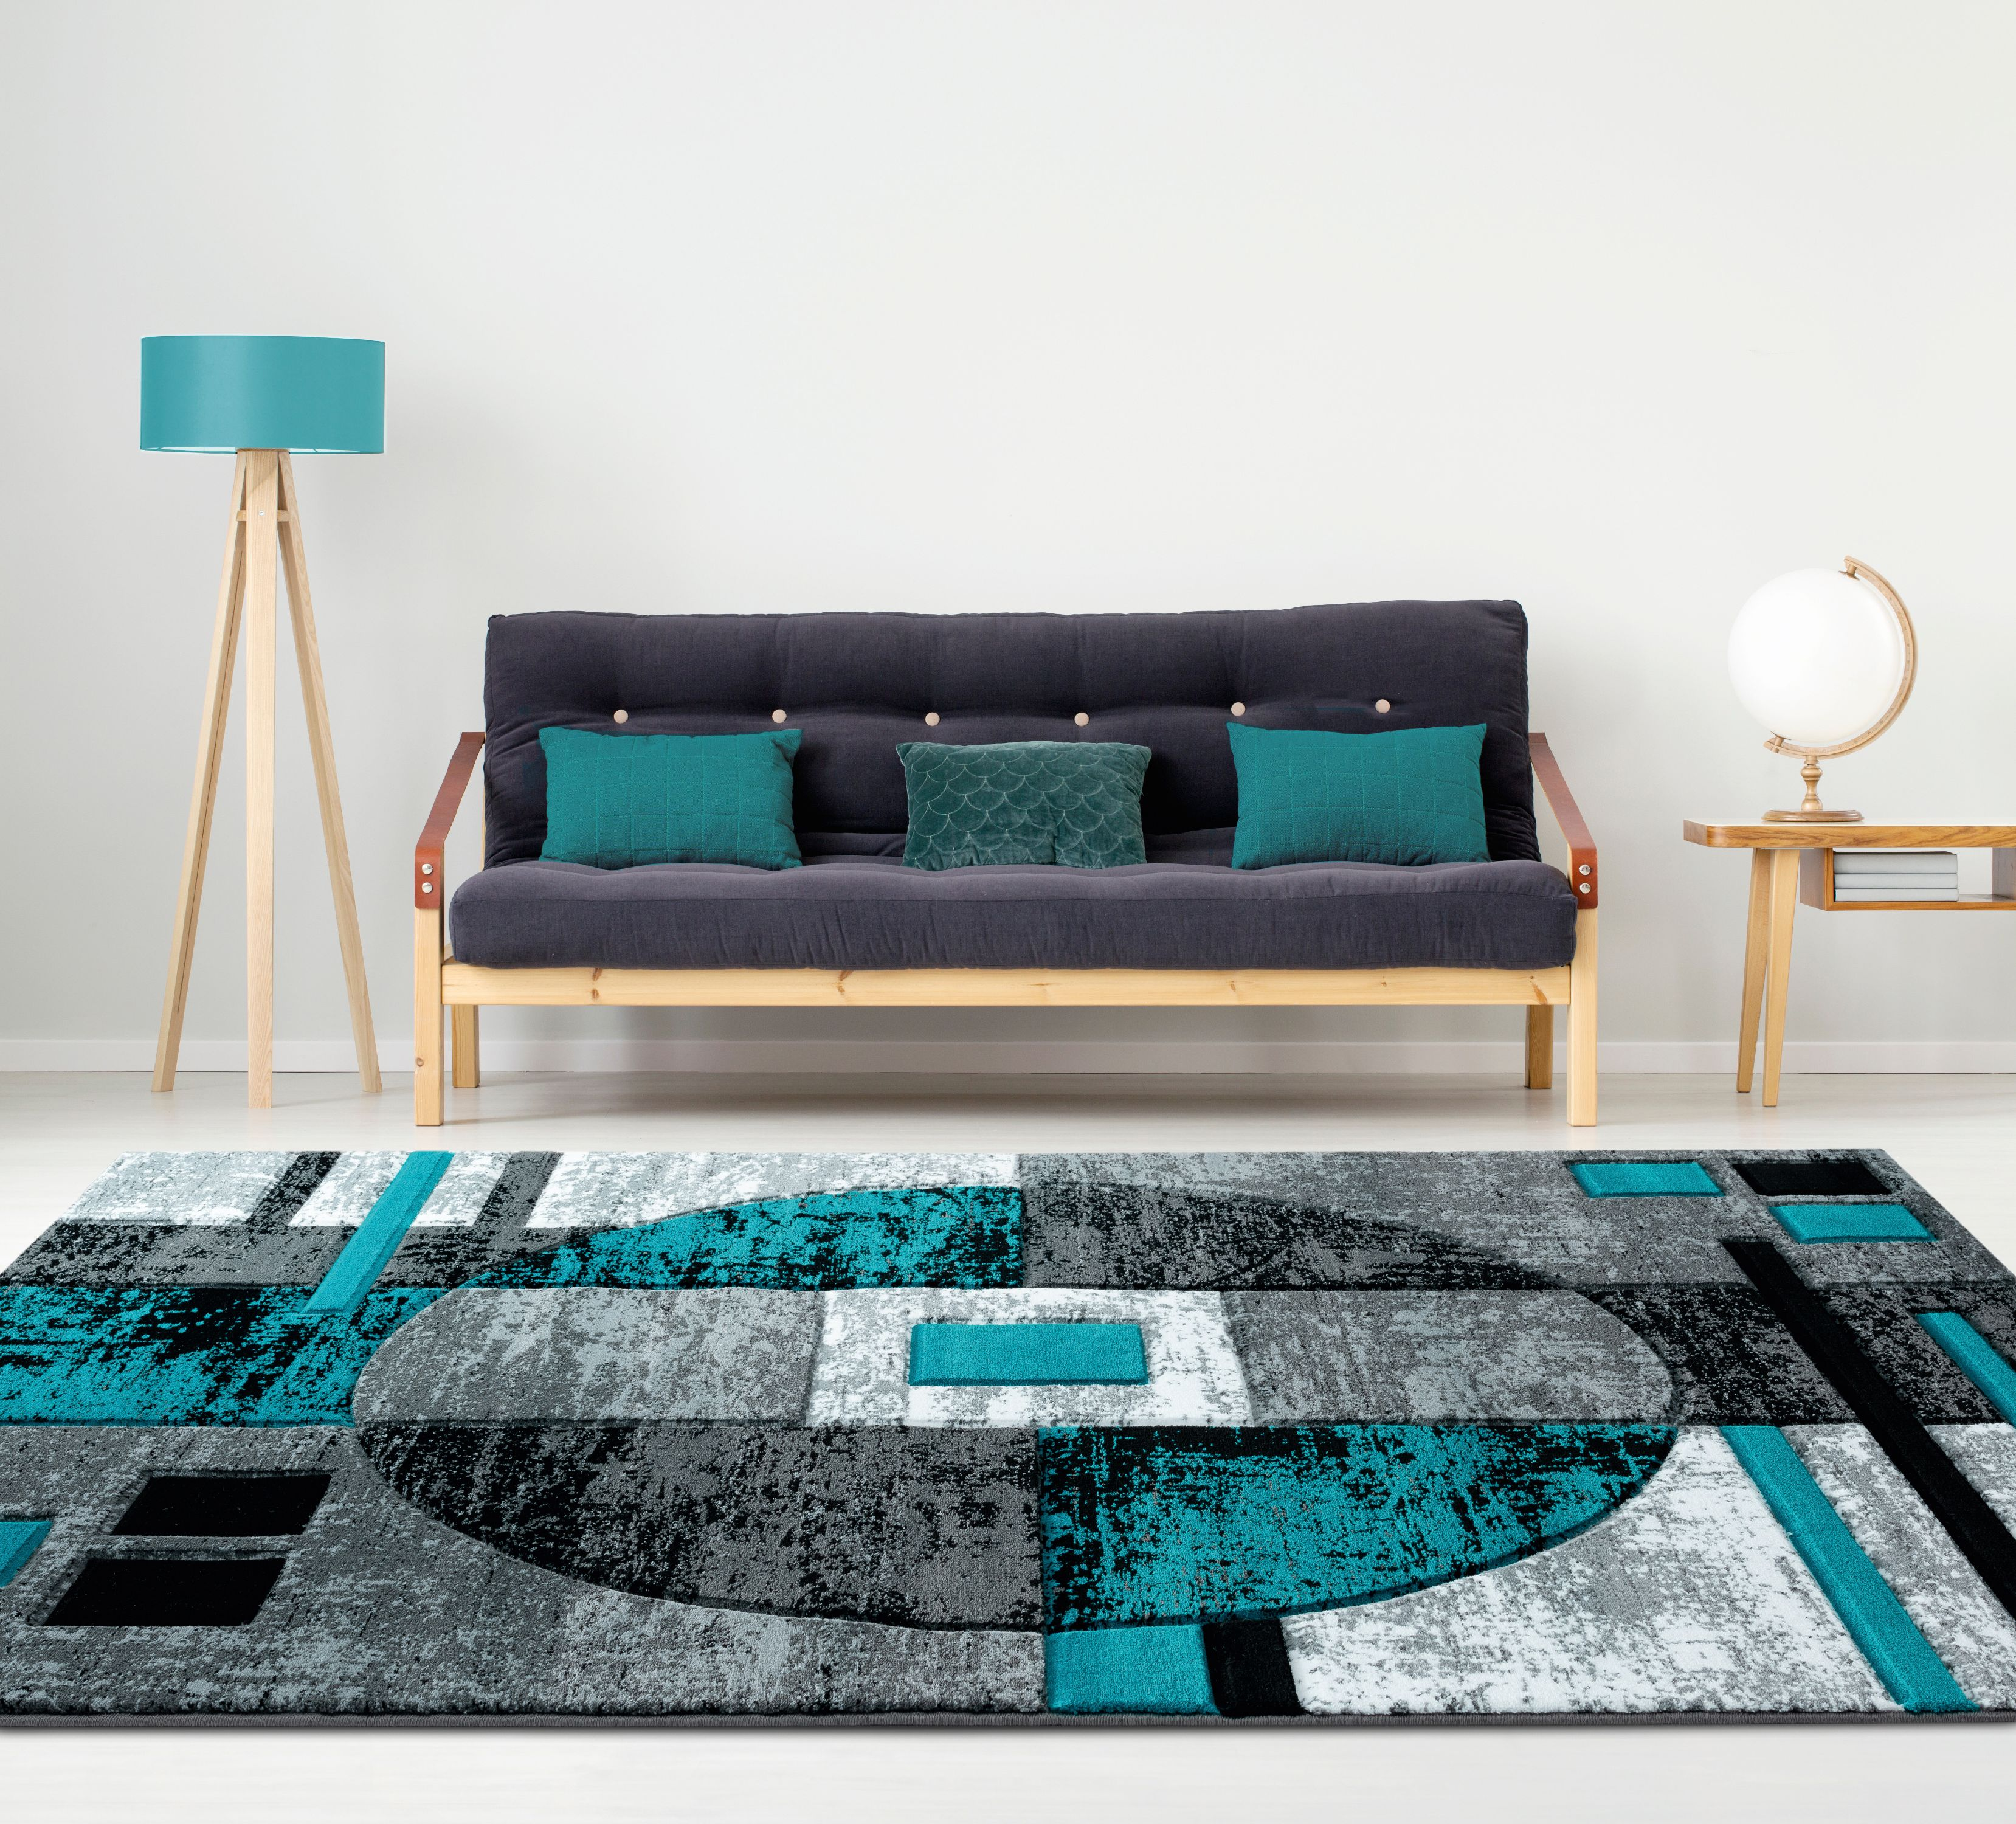 United Weavers Drachma Attica Modern Turquoise Woven Olefin/Polypropylene Area Rug or Runner